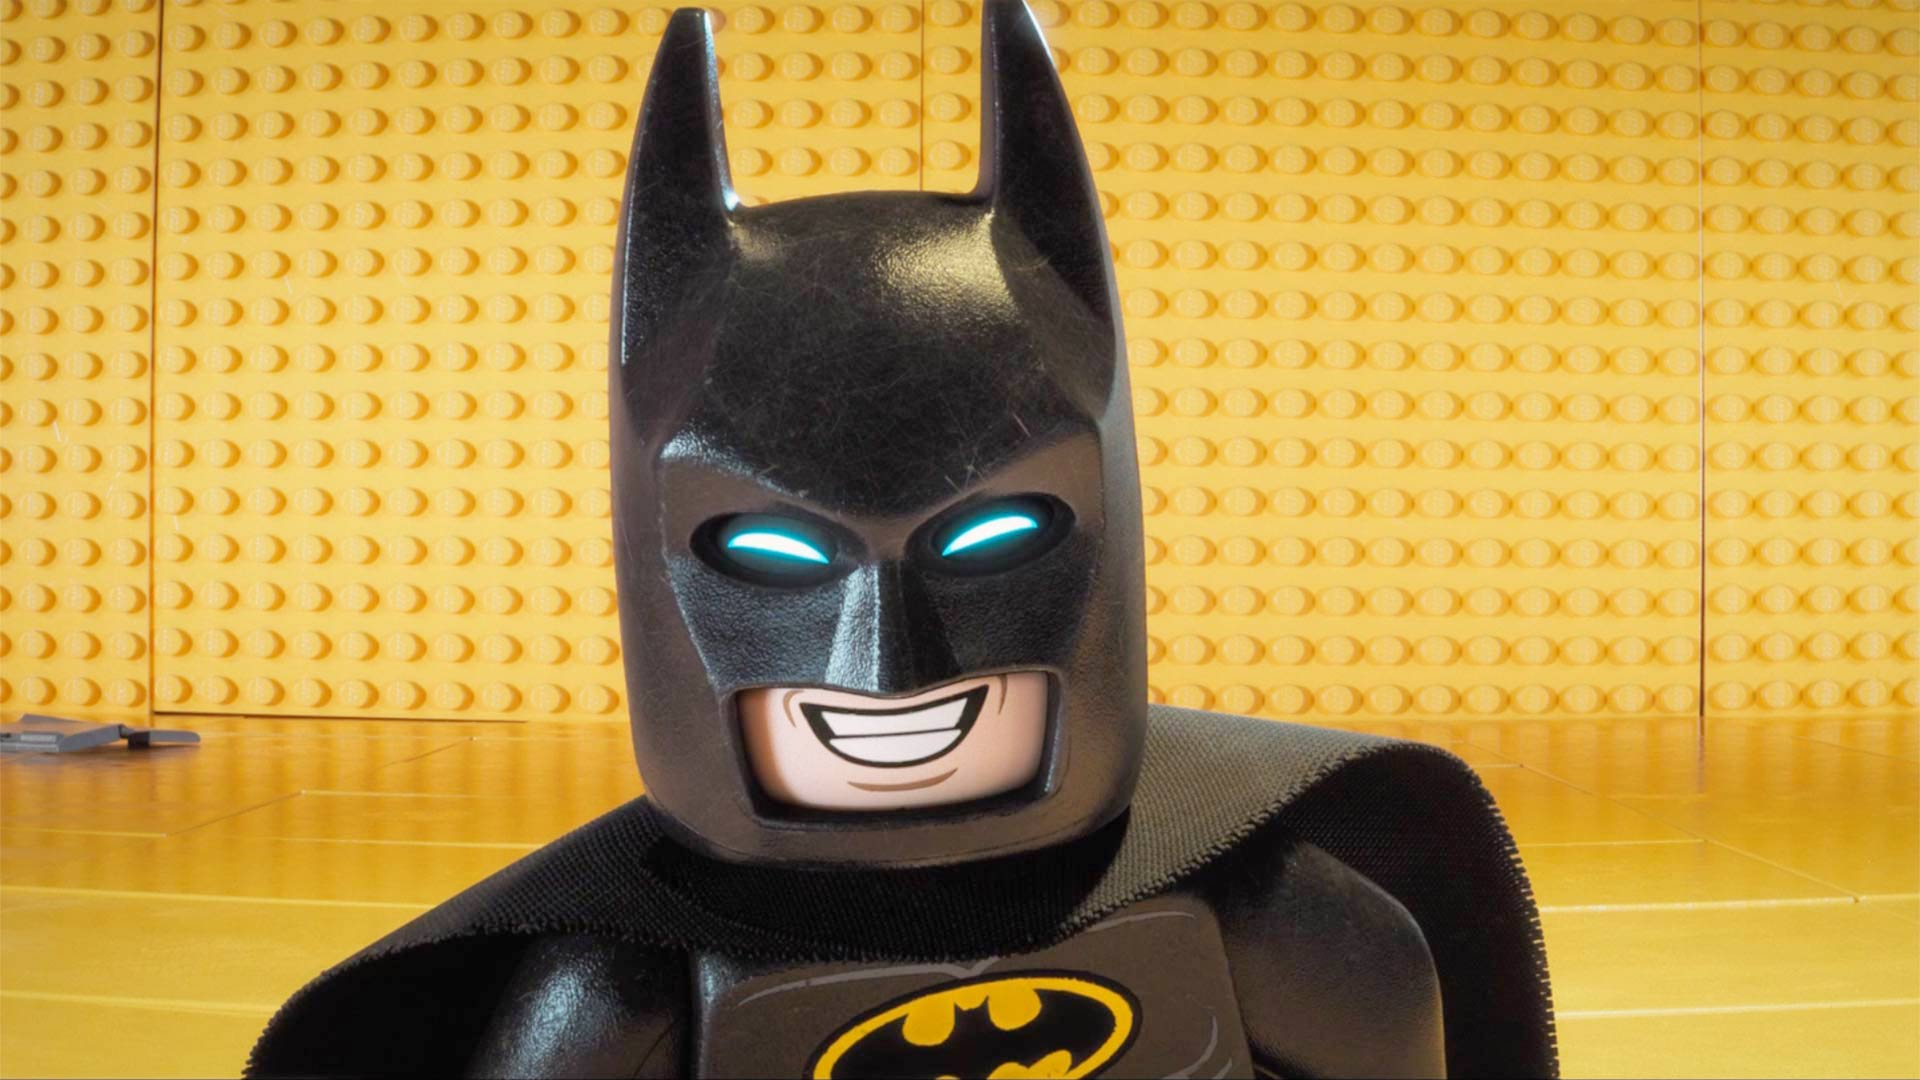 lego batman 2 Top 12 Hollywood Movies to Look Forward to in 2017